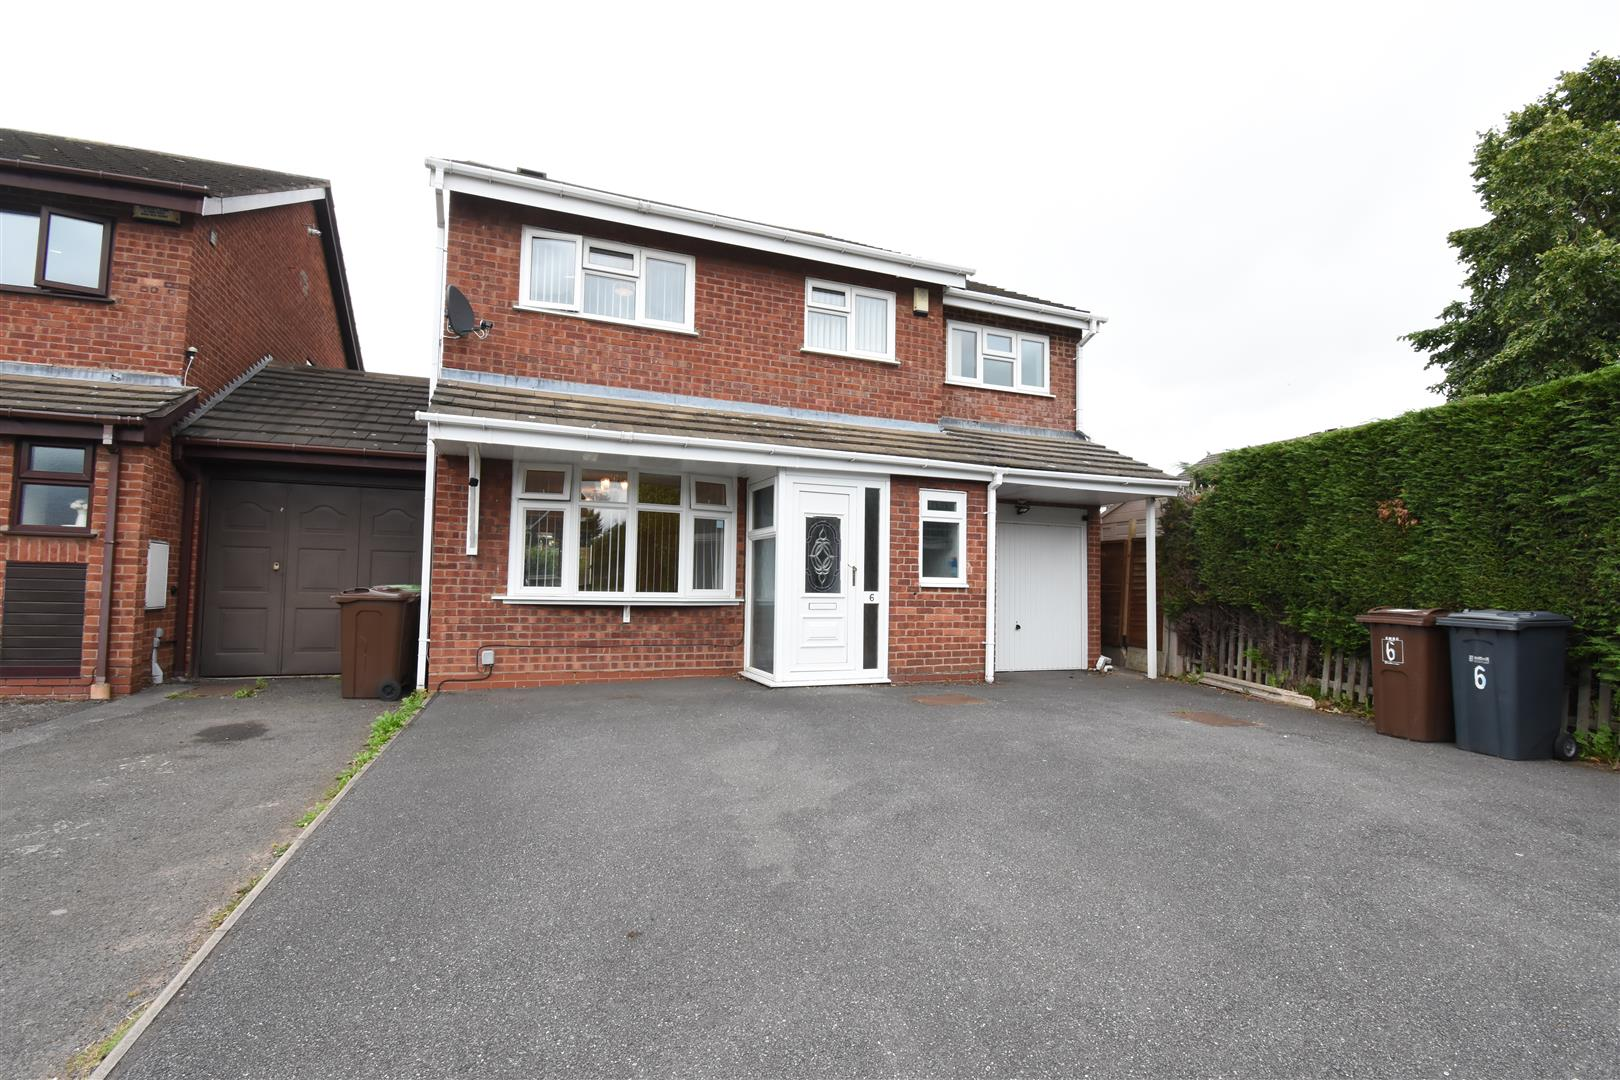 5 bed house for sale in Delamere Close, Castle Bromwich, Birmingham, B36